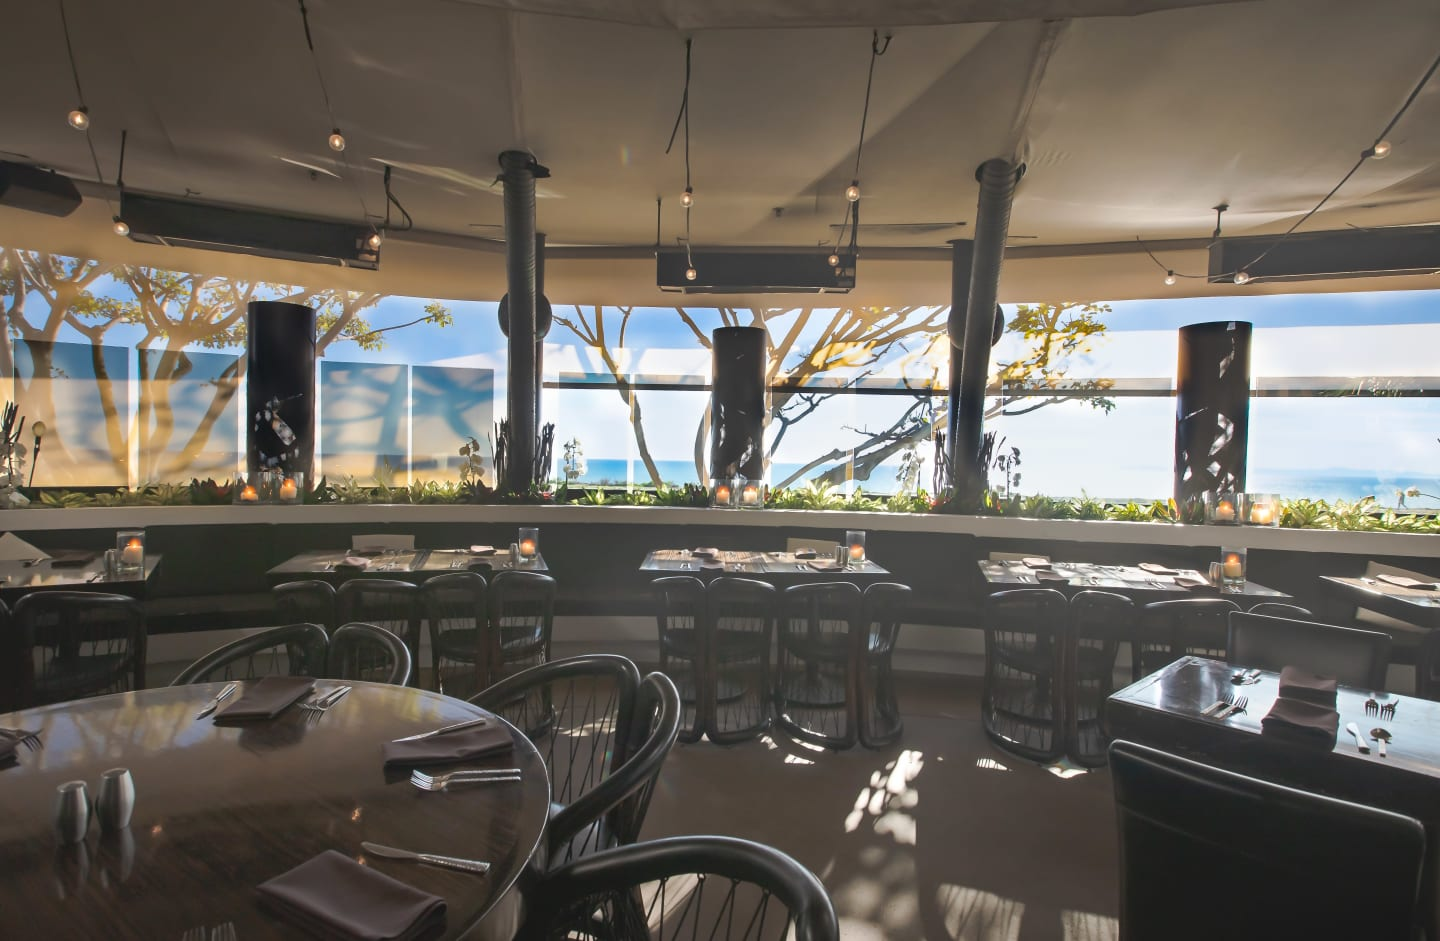 Oceanview Patio Javier's Newport Beach Copyright © 2019 SNAPTASTE®  INC.